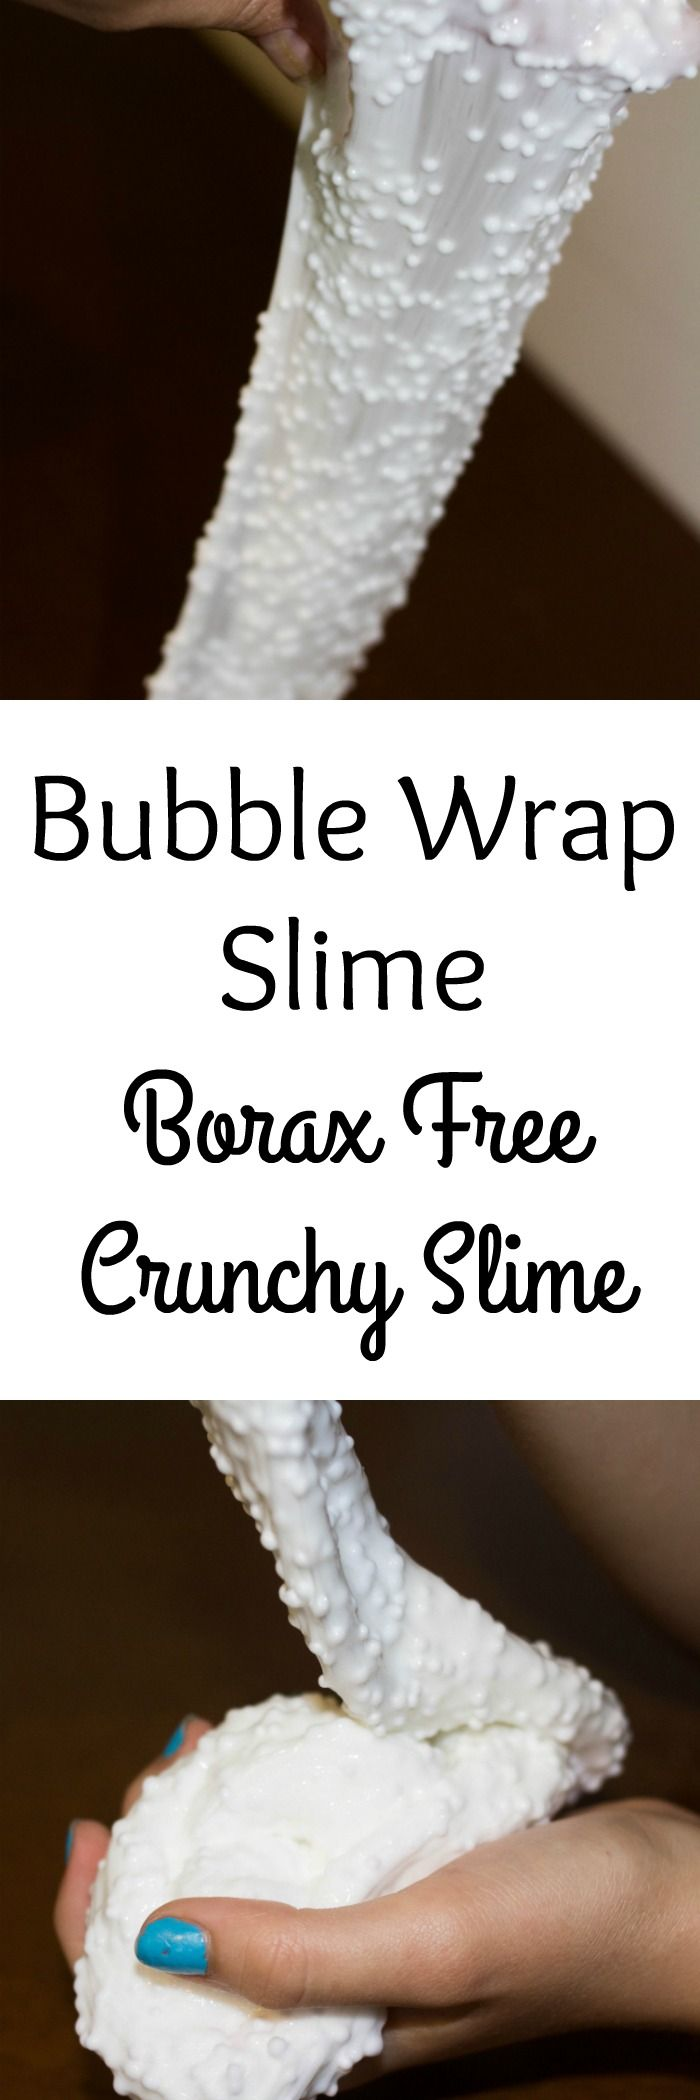 Have you tried crunchy slime yet? Kids love it. We created a borax free crunchy slime that feels like playing with bubble wrap.